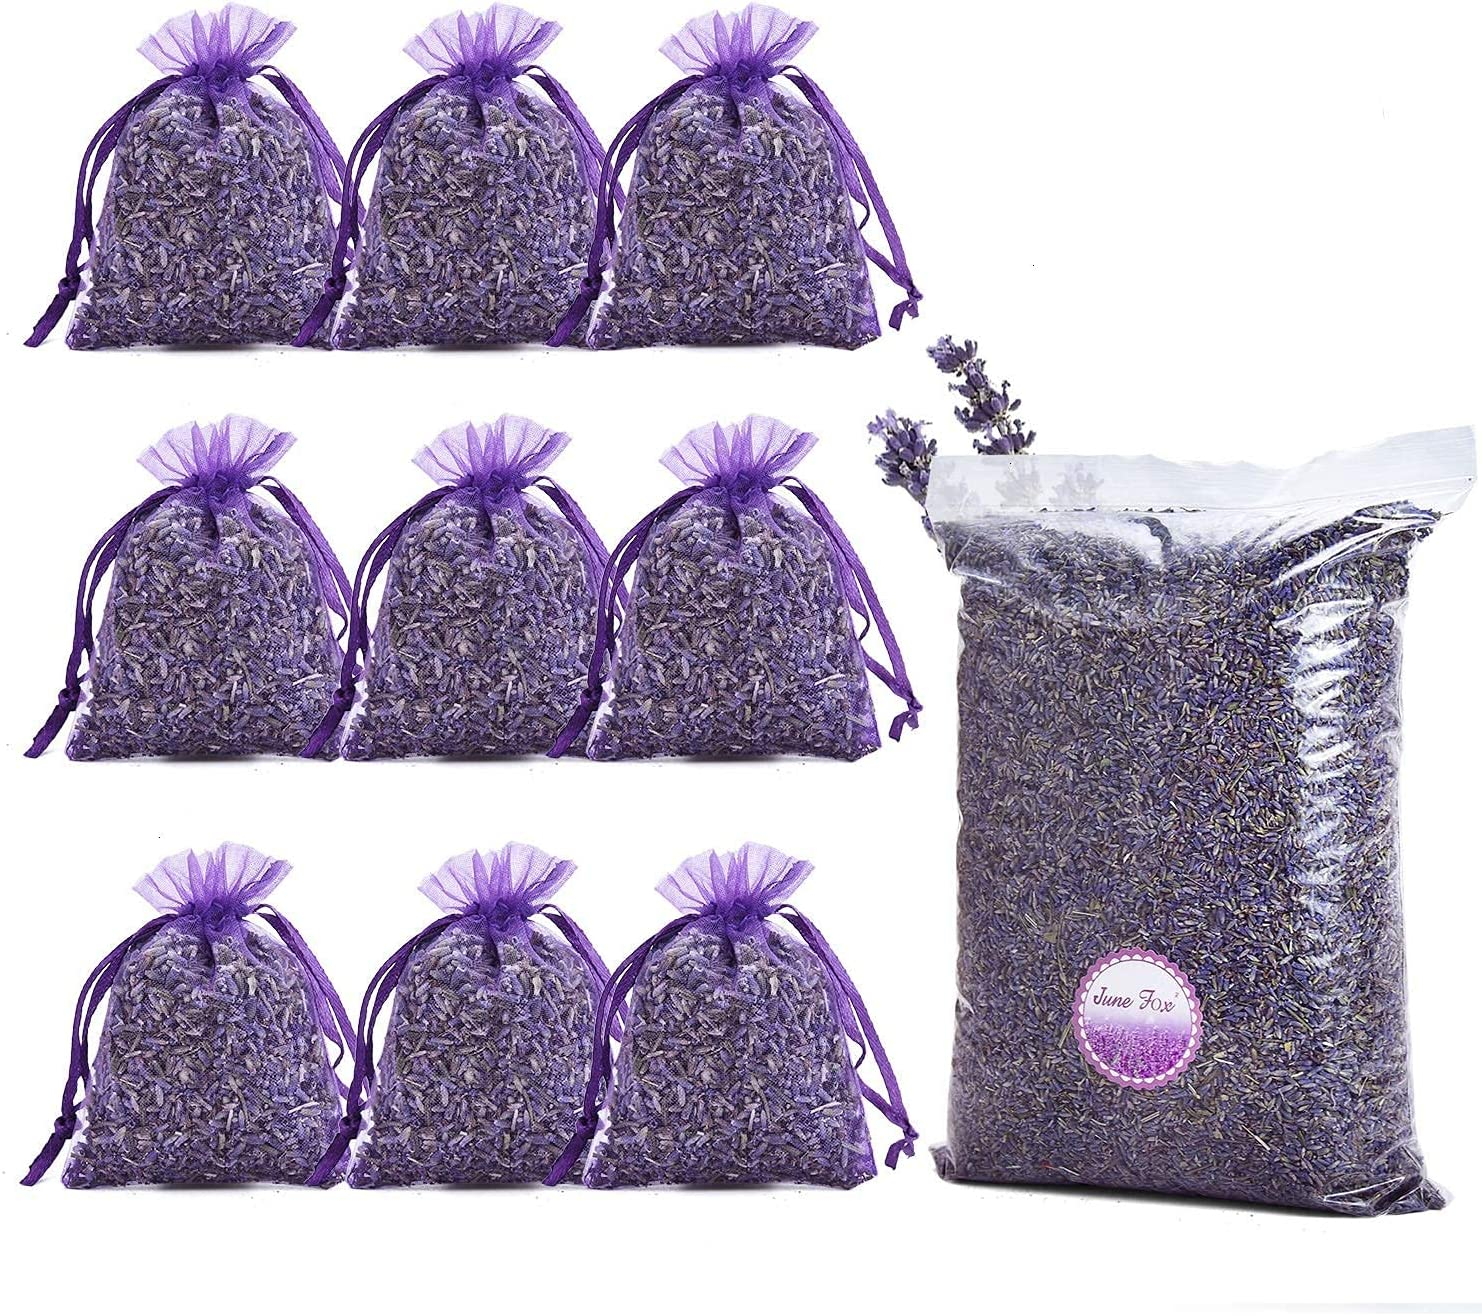 June Fox Fragrant Lavender Buds Department store Drawers Charlotte Mall Sachets F Dried